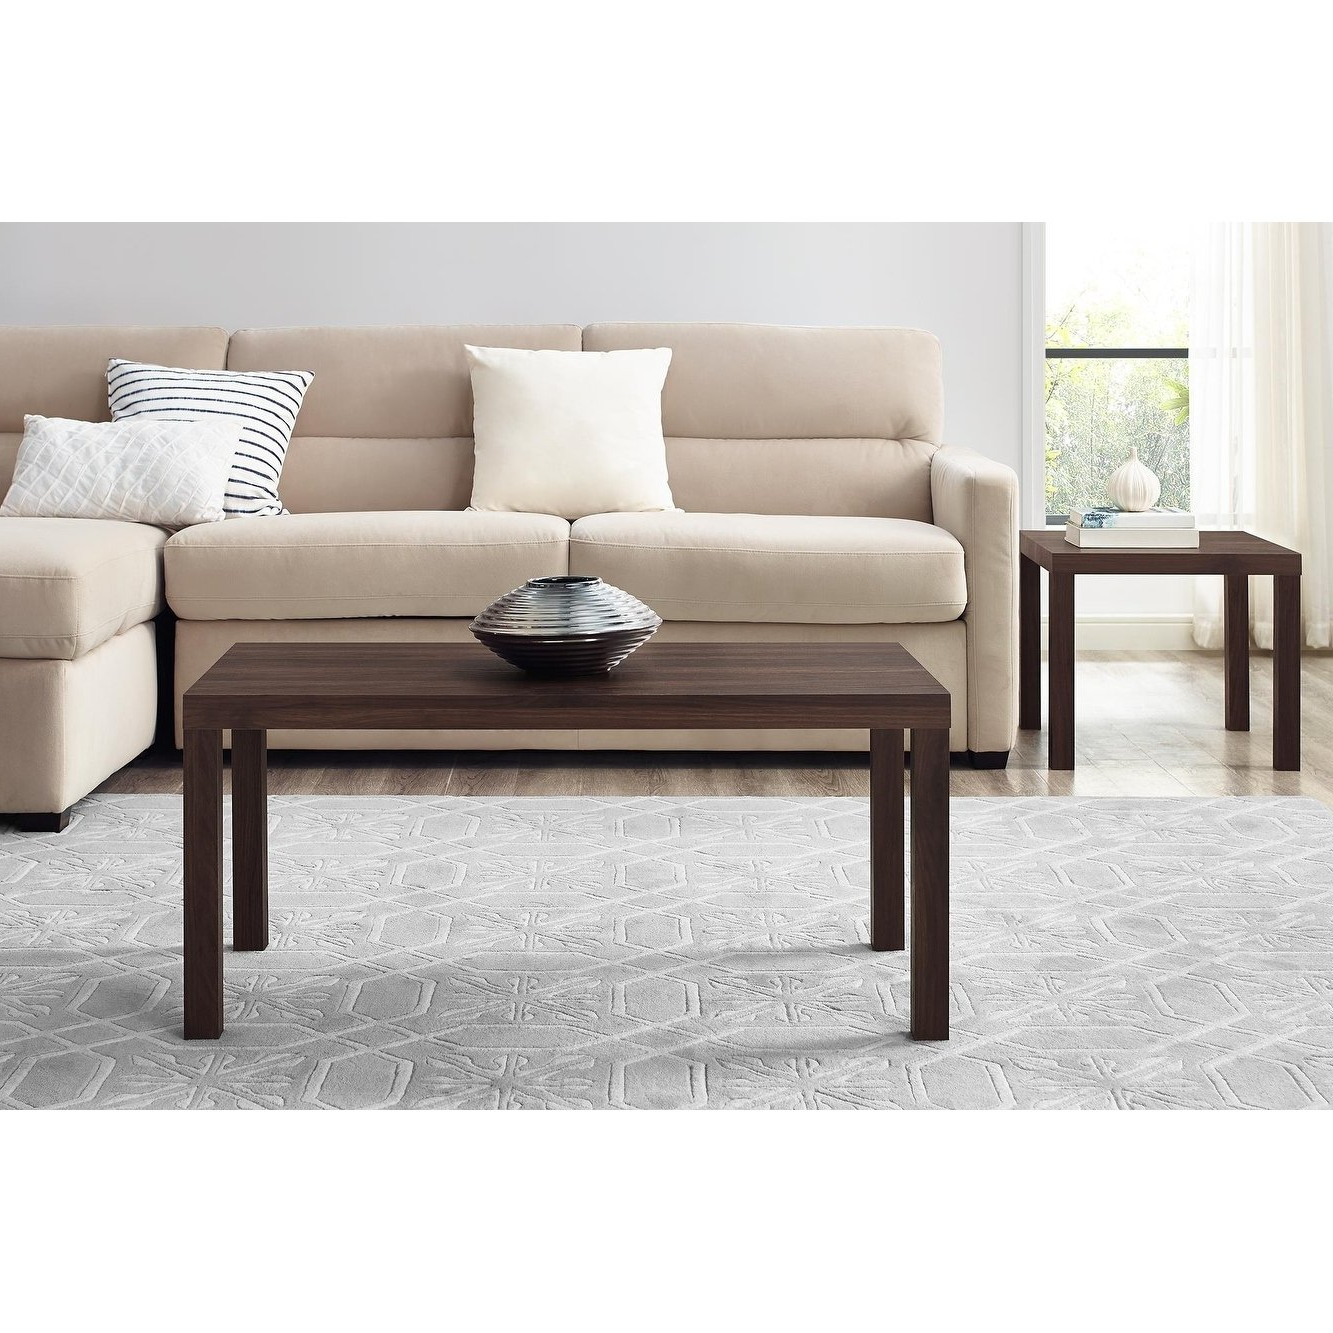 Trendy Jaxon Cocktail Tables Within Shop Avenue Greene Jaxon Walnut Coffee Table – Free Shipping Today (View 20 of 20)